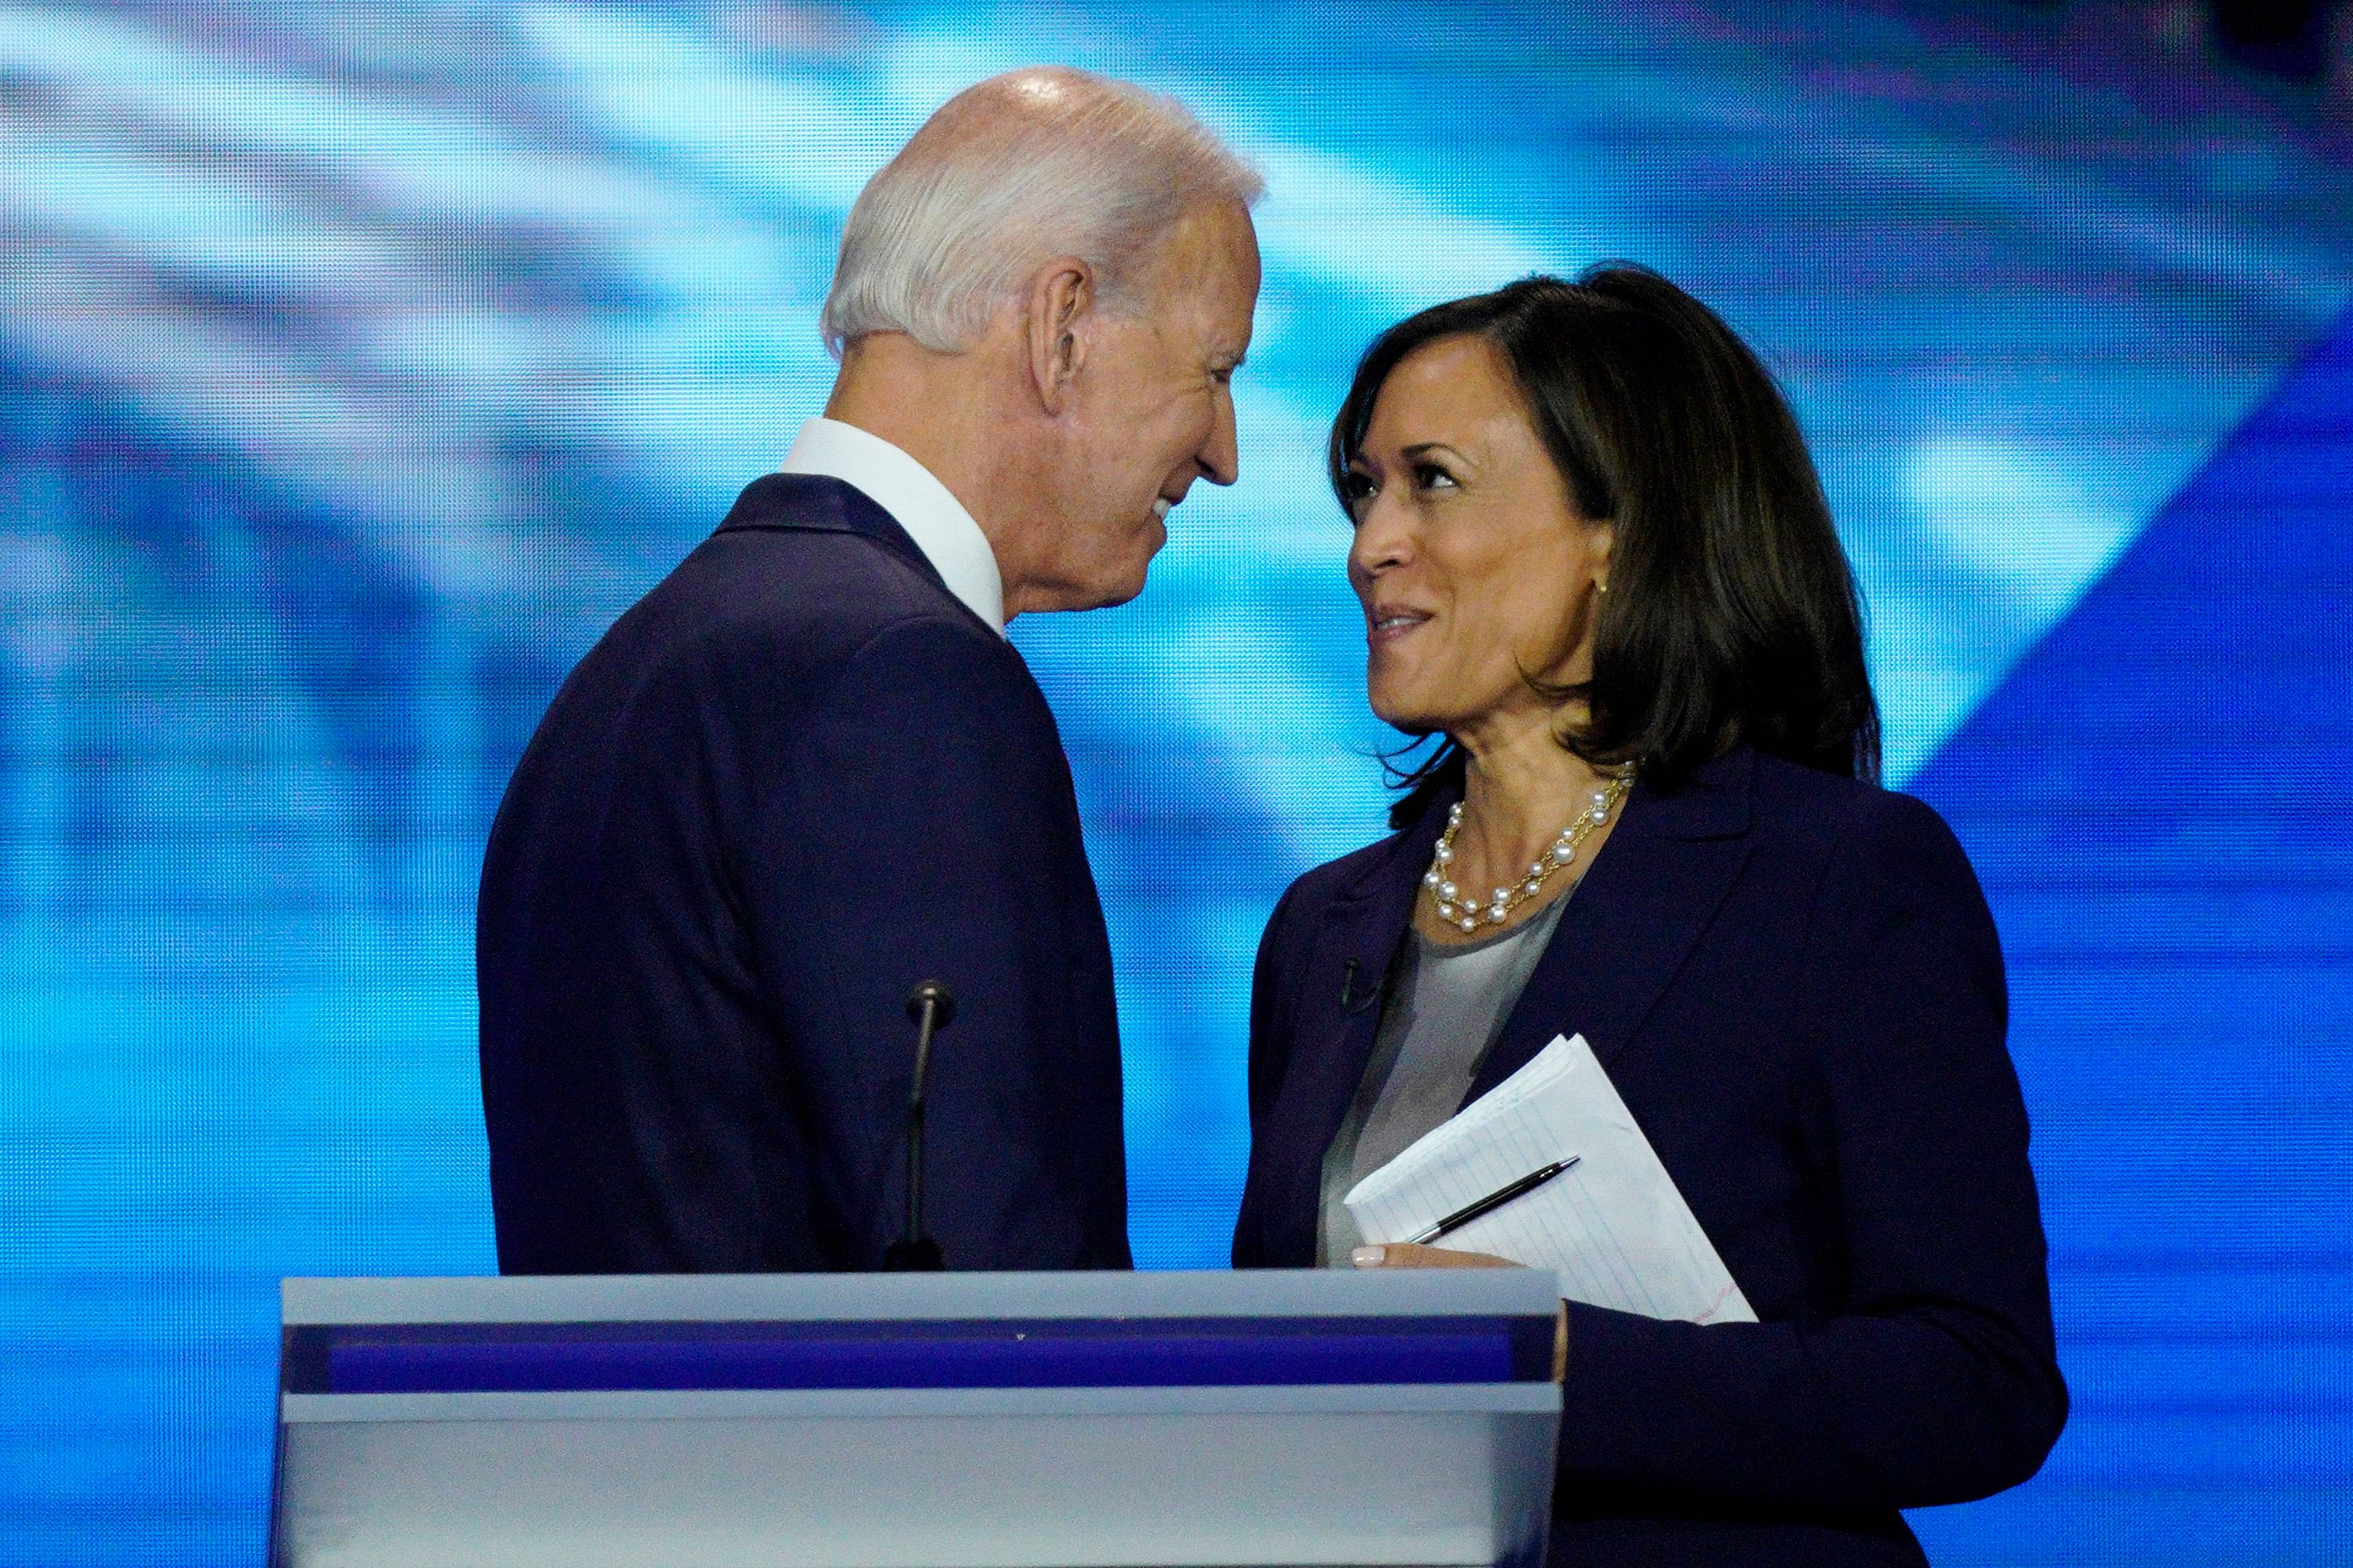 Gender Blunder Joe Biden Refers To Kamala Harris Husband As Kamala S Wife Republicans Mock Awkward Gaffe